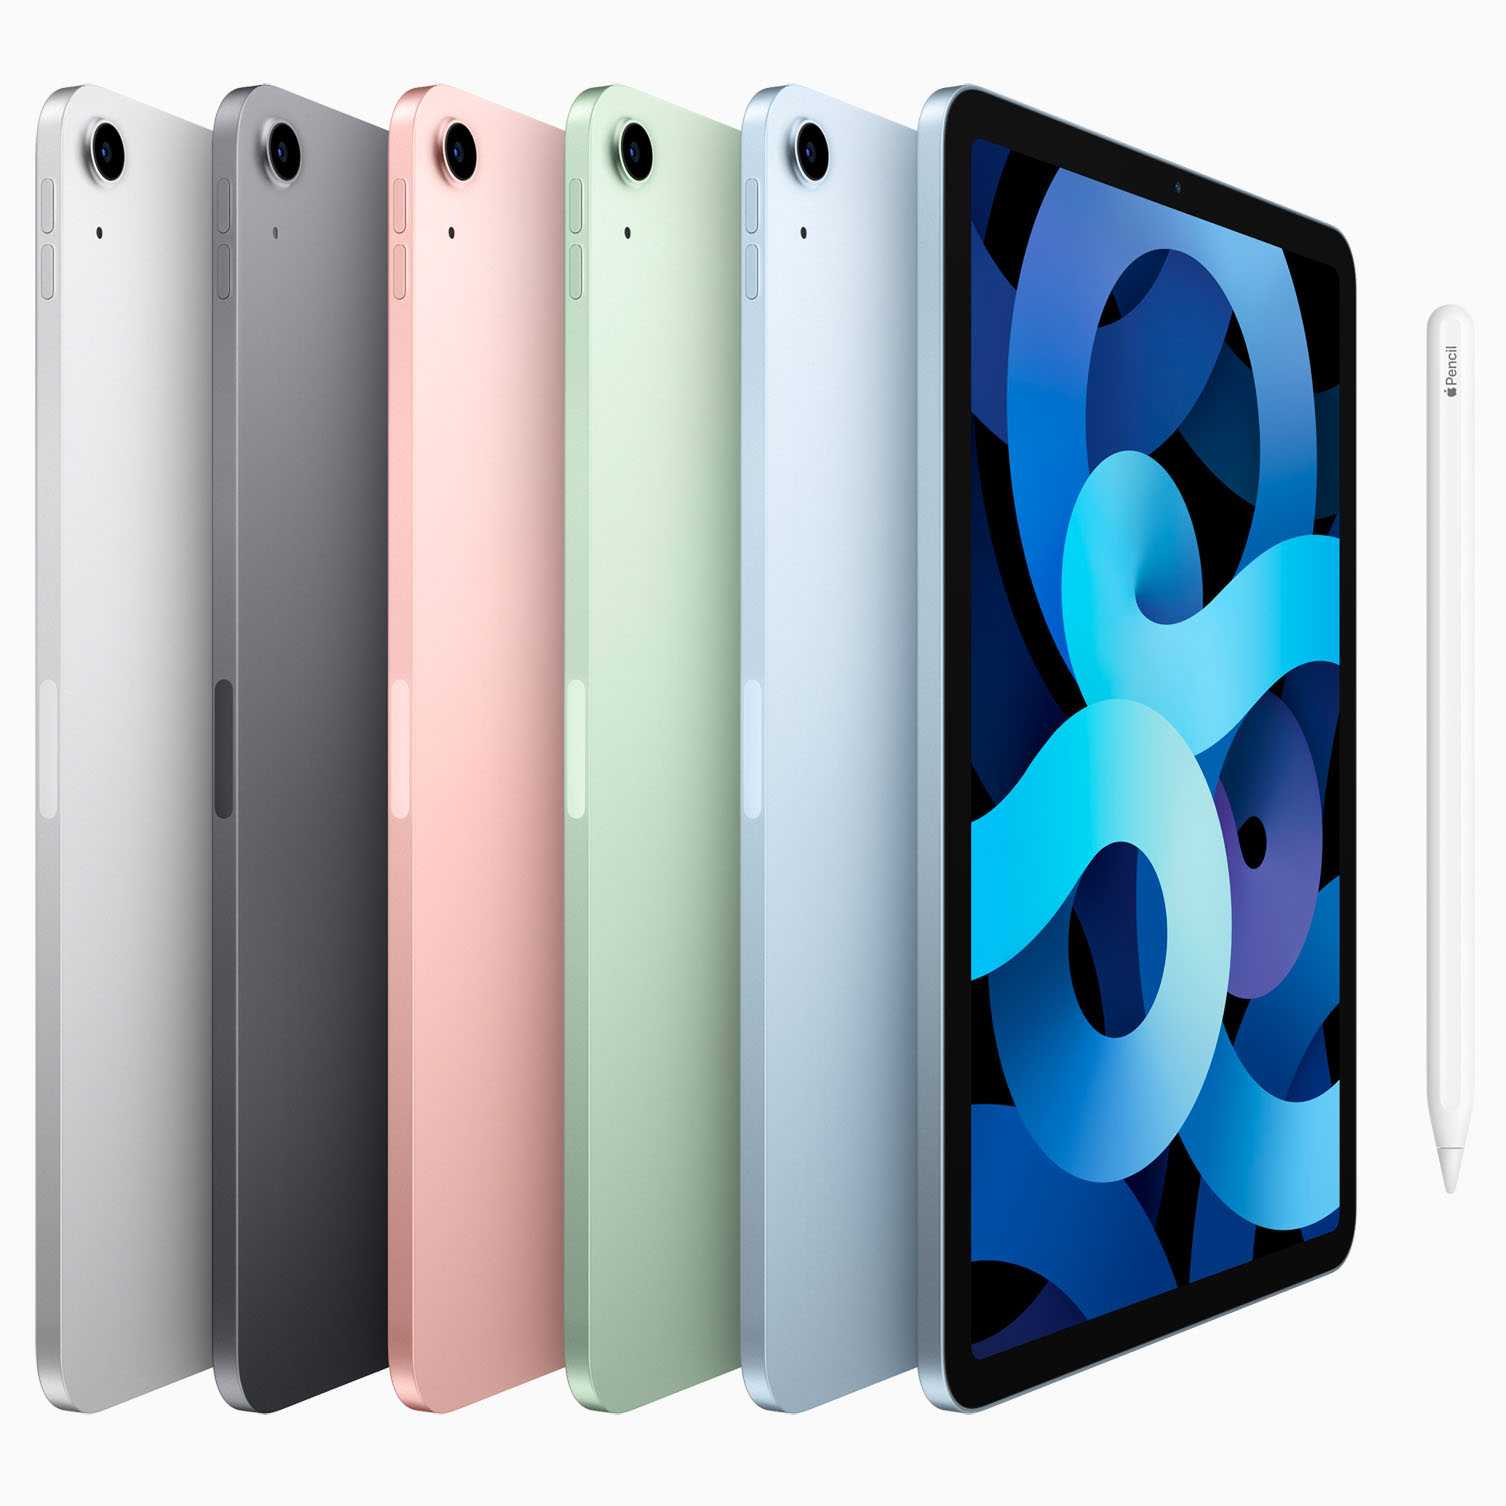 iPad Air 4th Gen in 5 Colour Options